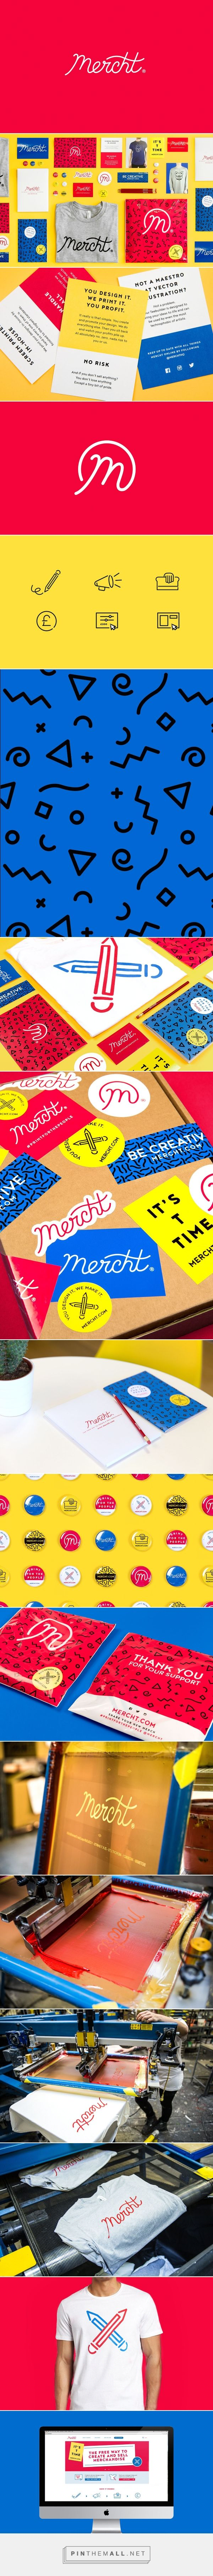 Mercht on Behance - created via https://pinthemall.net